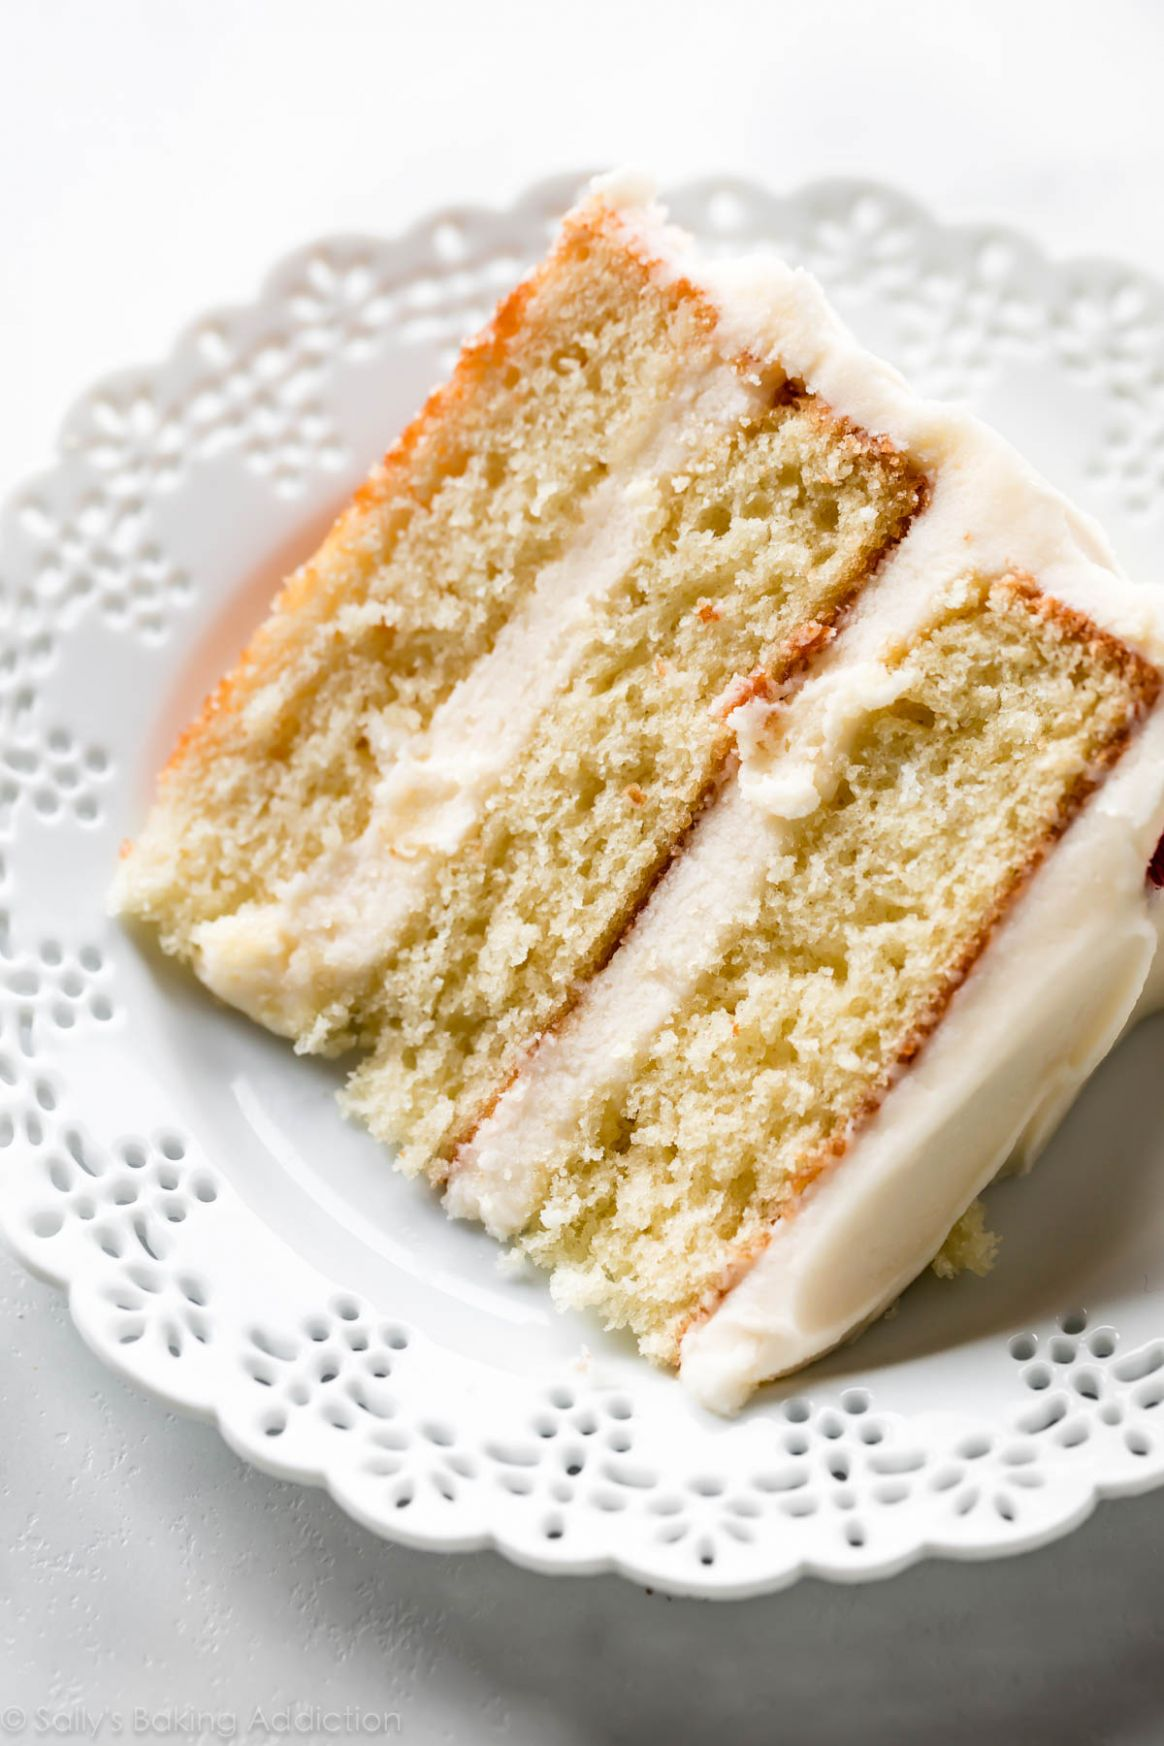 Best Vanilla Cake - Recipes Cake Vanilla